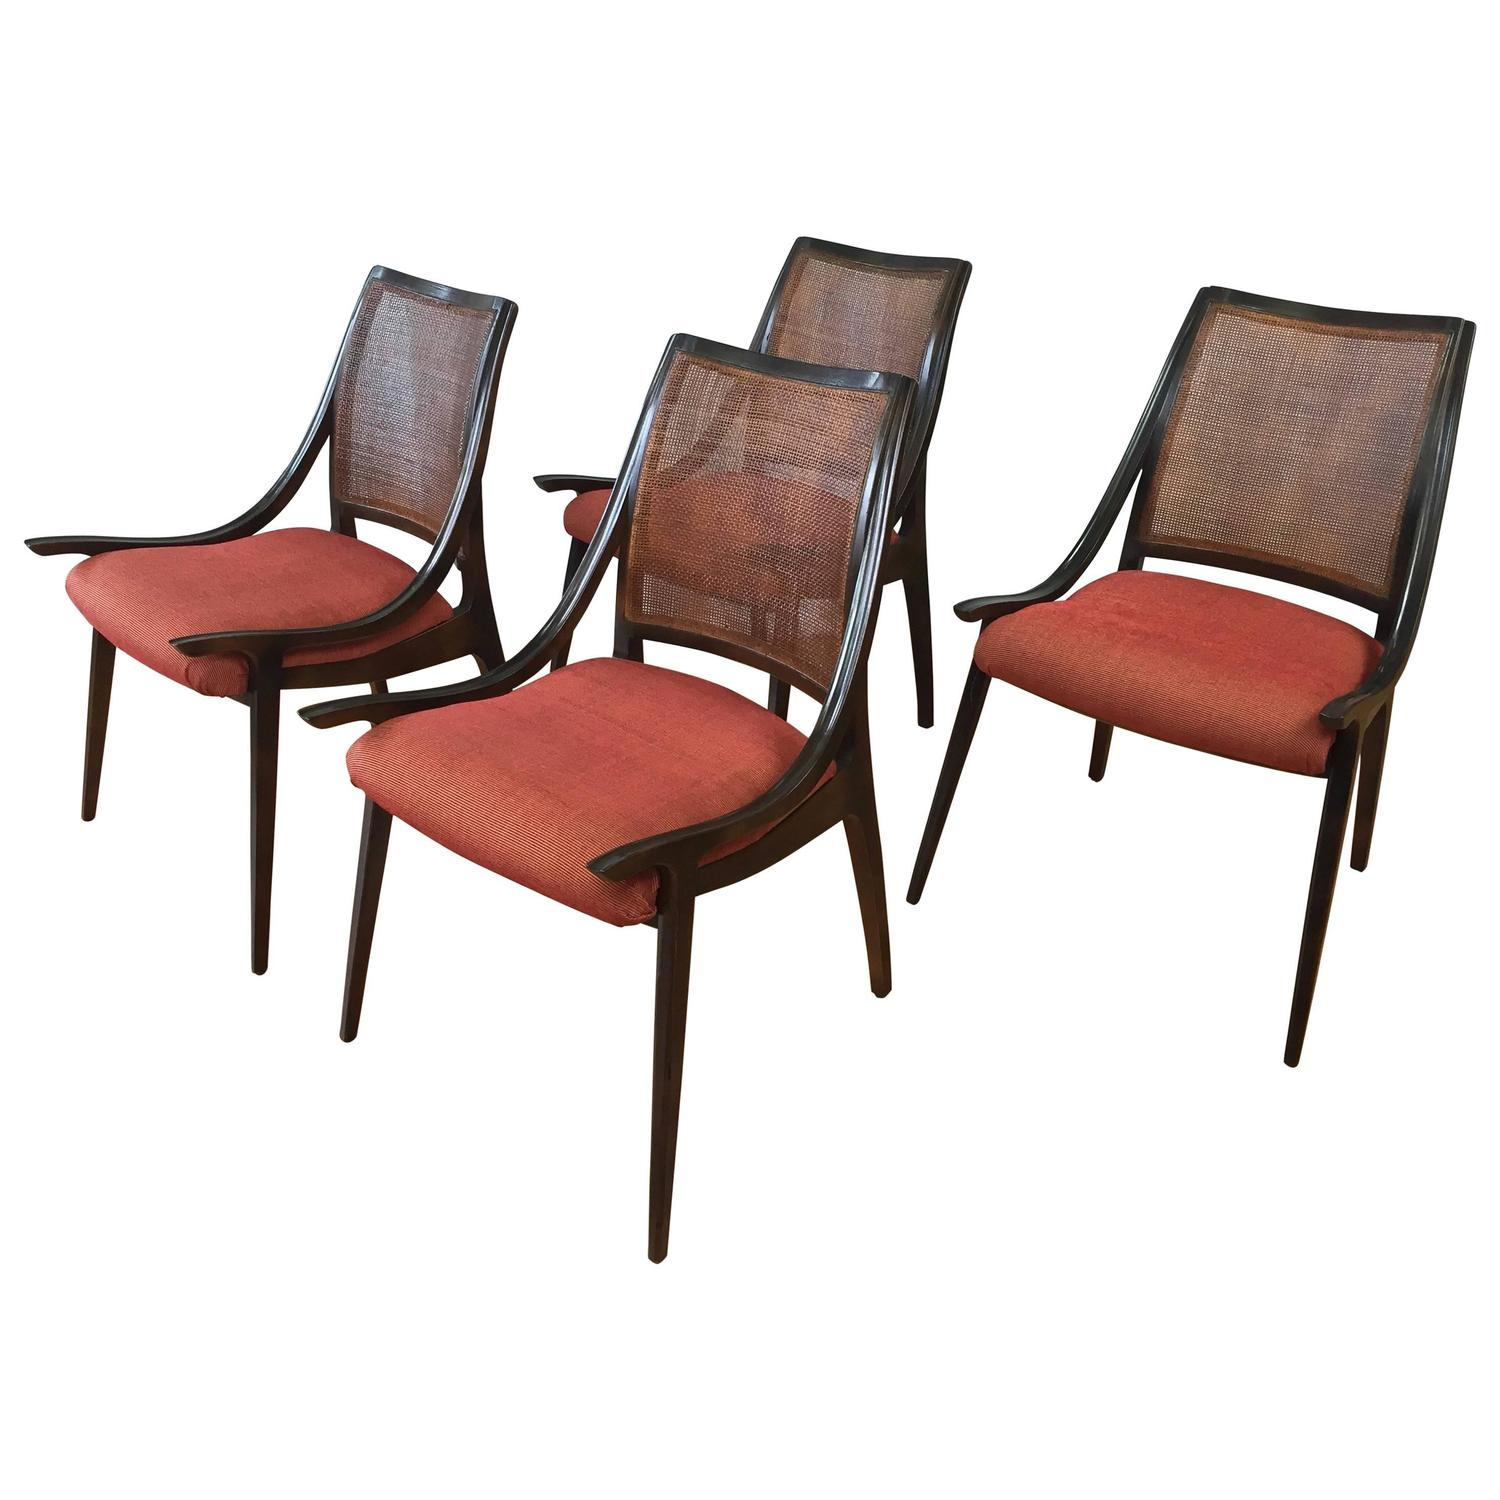 four cane back walnut dining chairs by richard thompson for glenn of